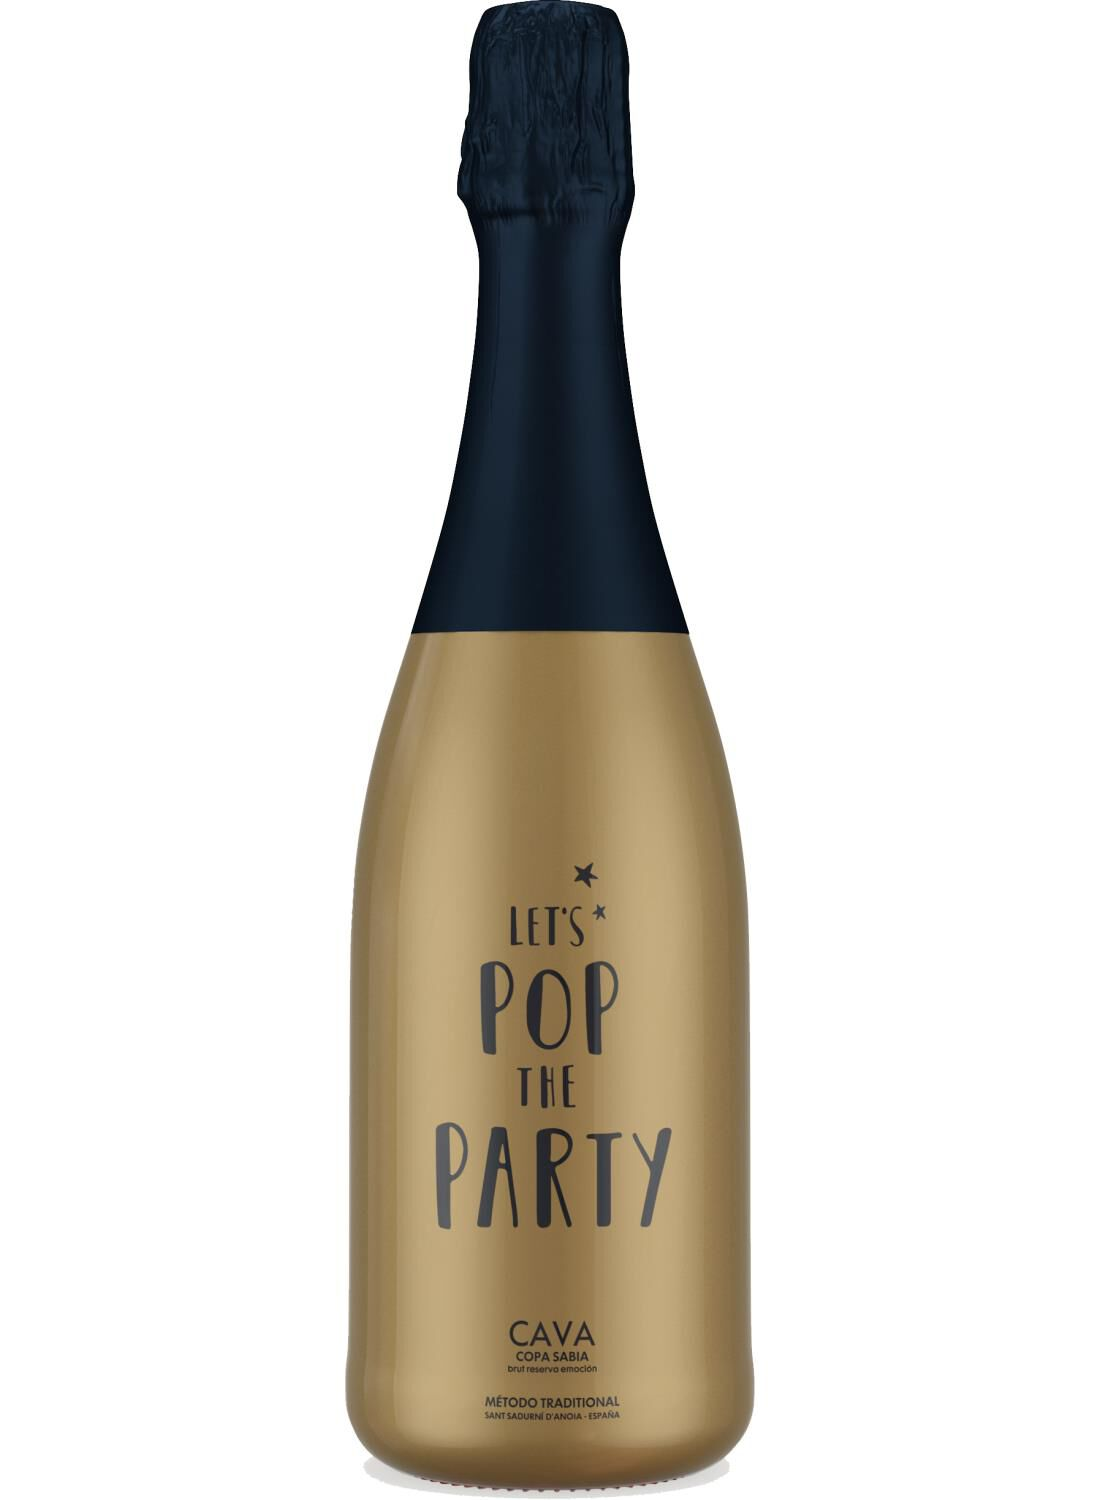 HEMA Copa Sabia Cava Goud Limited Edtion - 0,75 L kopen